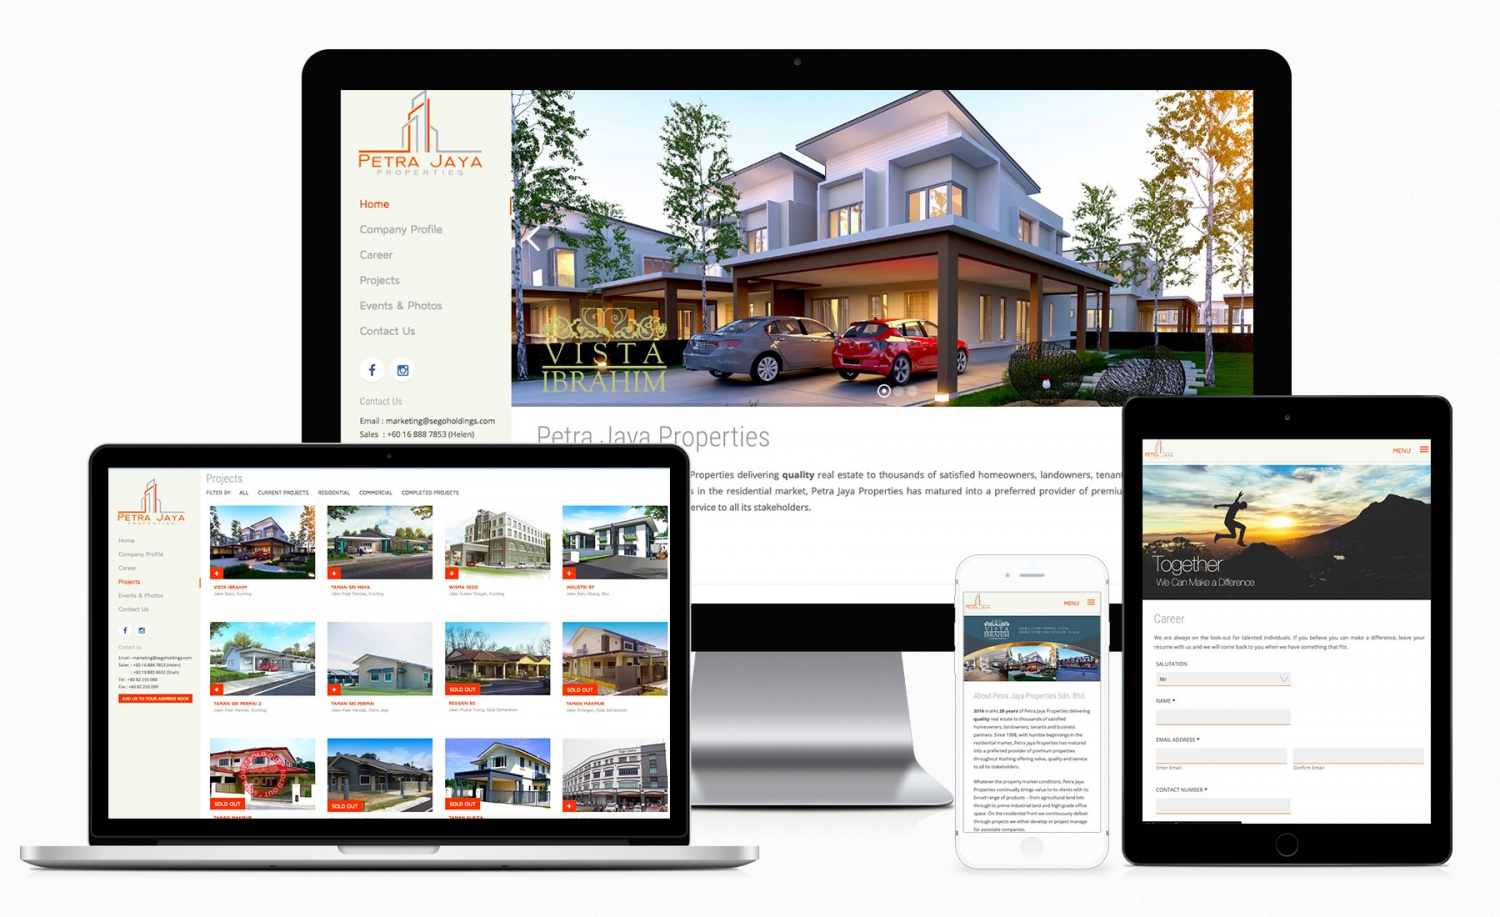 Petra Jaya Properties website design and development